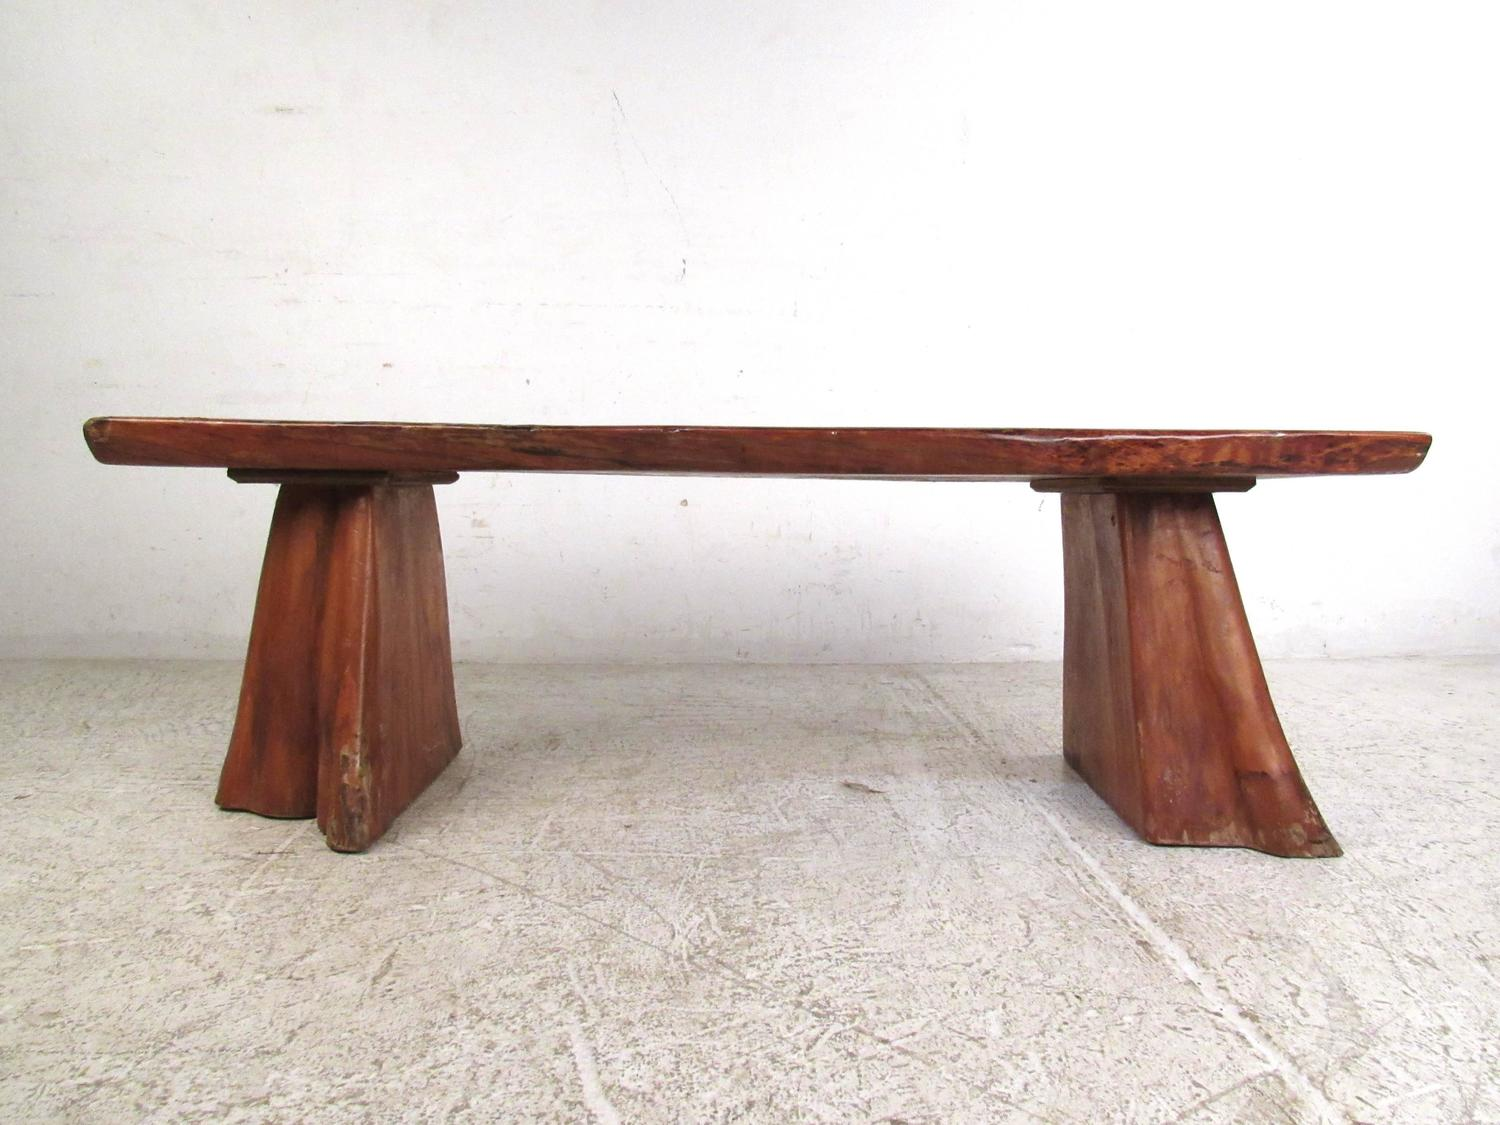 Vintage Rustic Wooden Bench Sculpted Live Edge Treetrunk